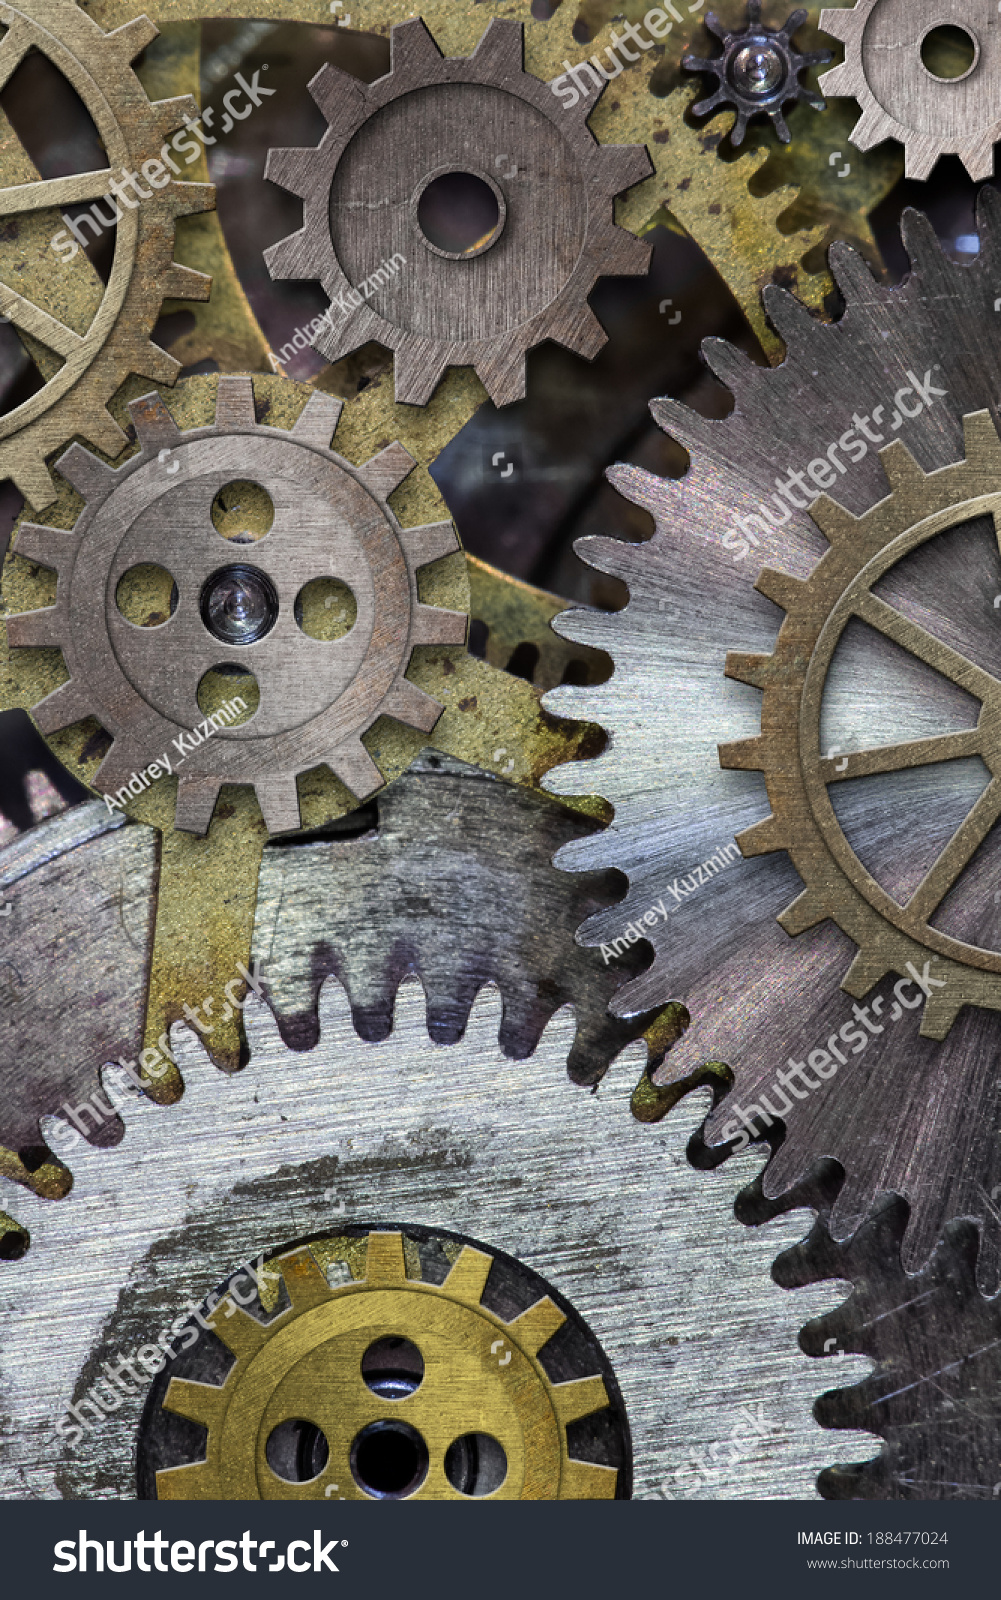 Clock Gears Cogs Background Stock Photo 188477024 ...